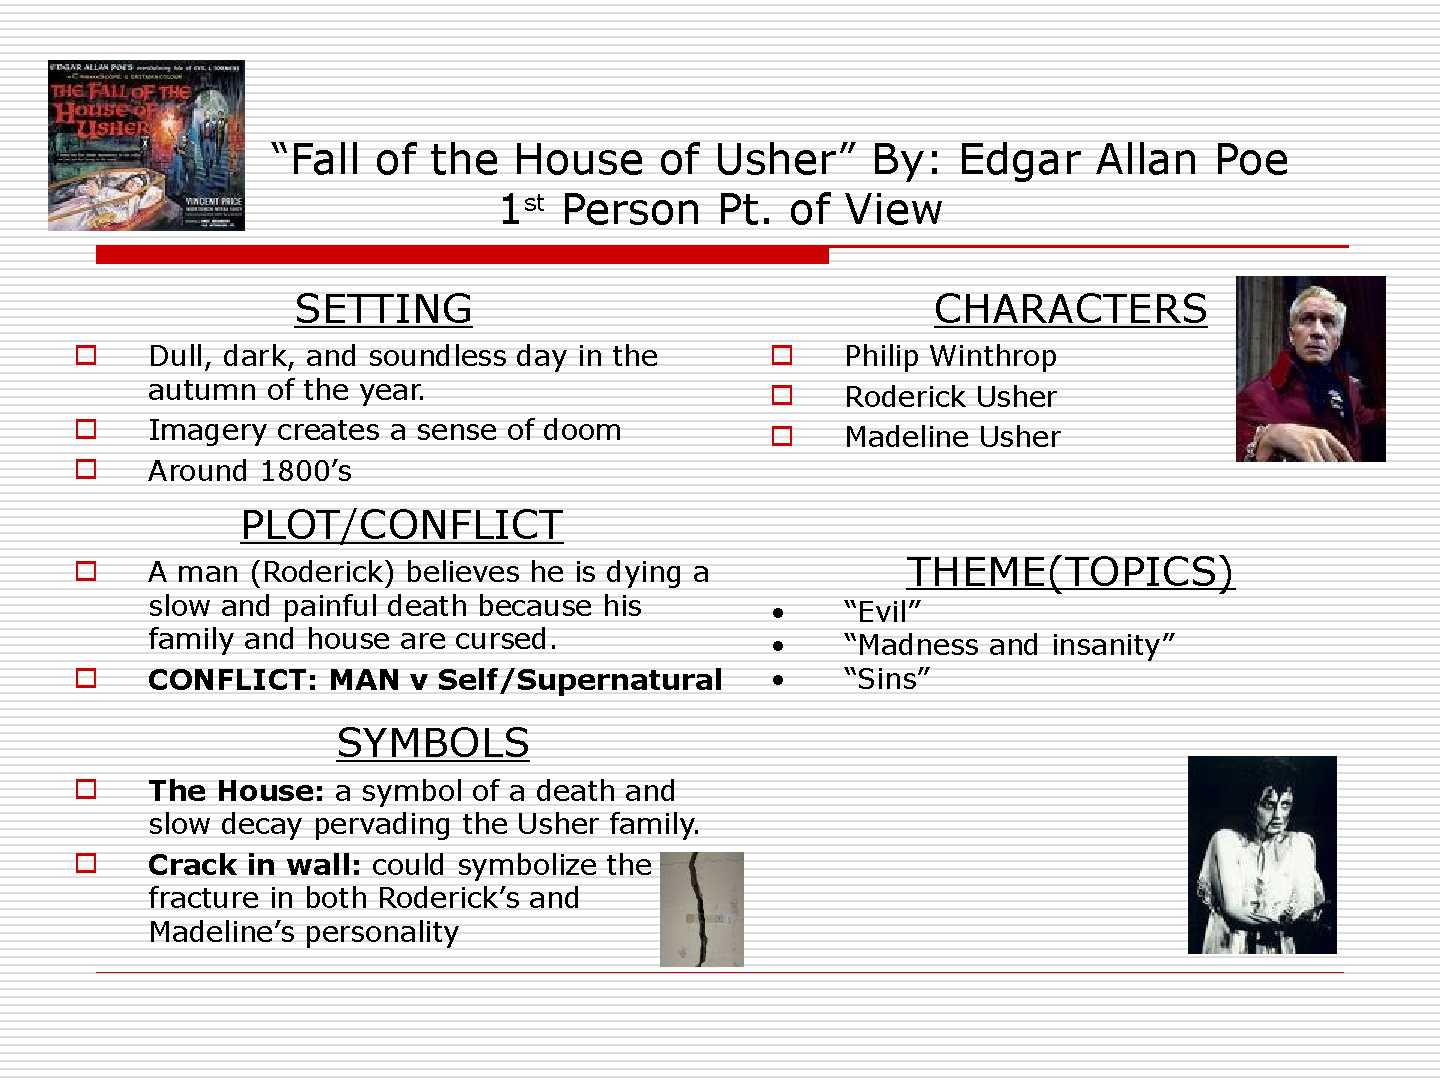 Fall of the house of usher analysis essay